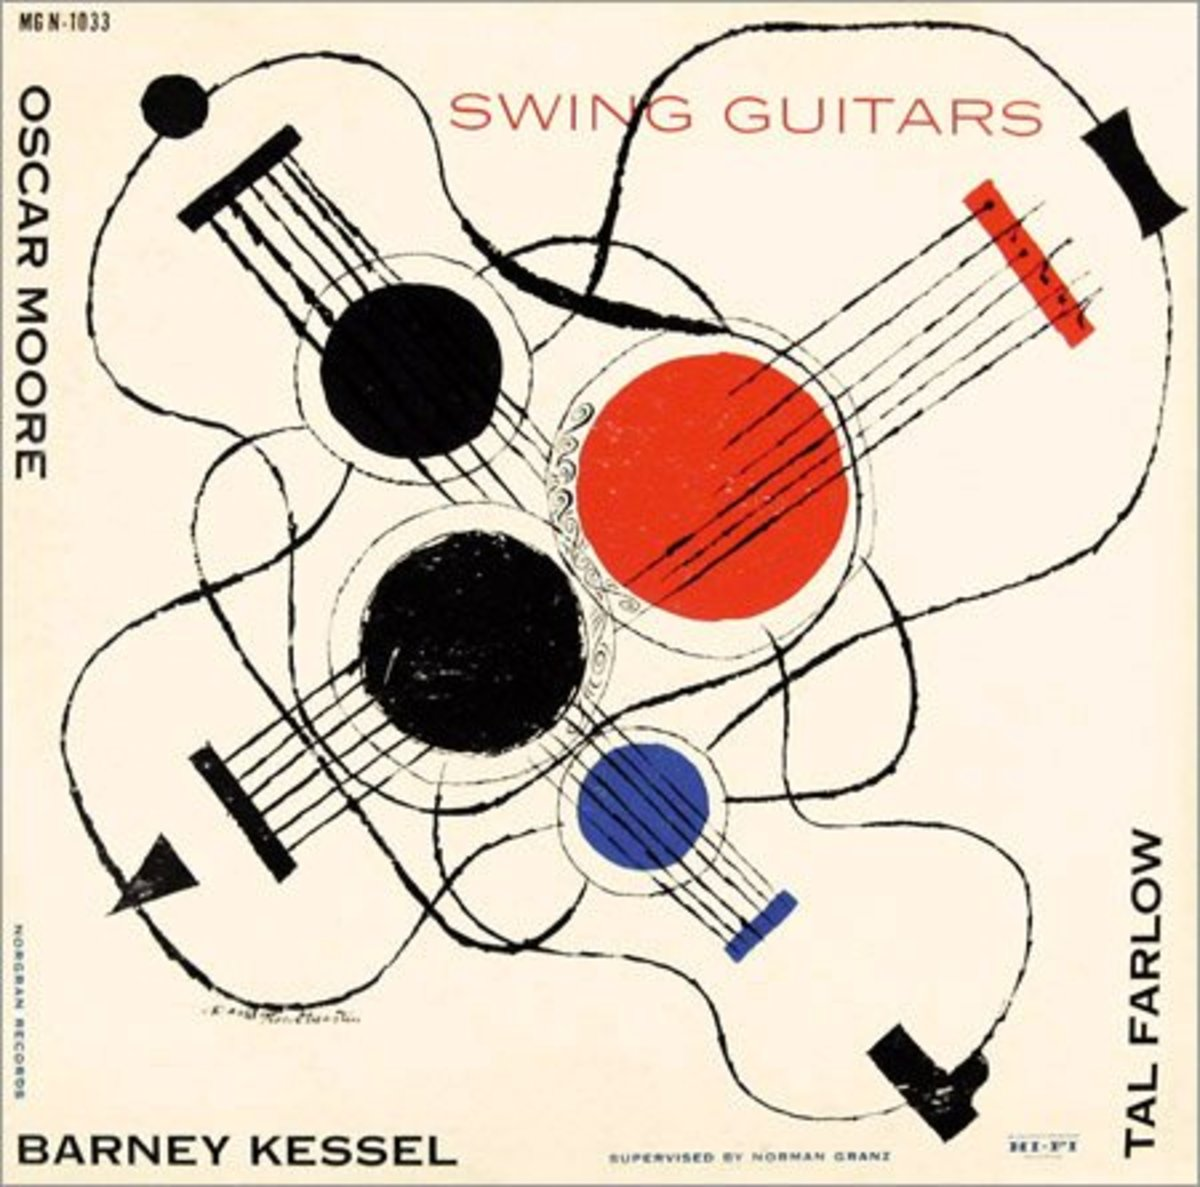 "Barney Kessel  ""Swing Guitars"" Norgran Records MG N 1033 12"" LP Vinyl Record (1955) Album Cover Art by David Stone Martin"